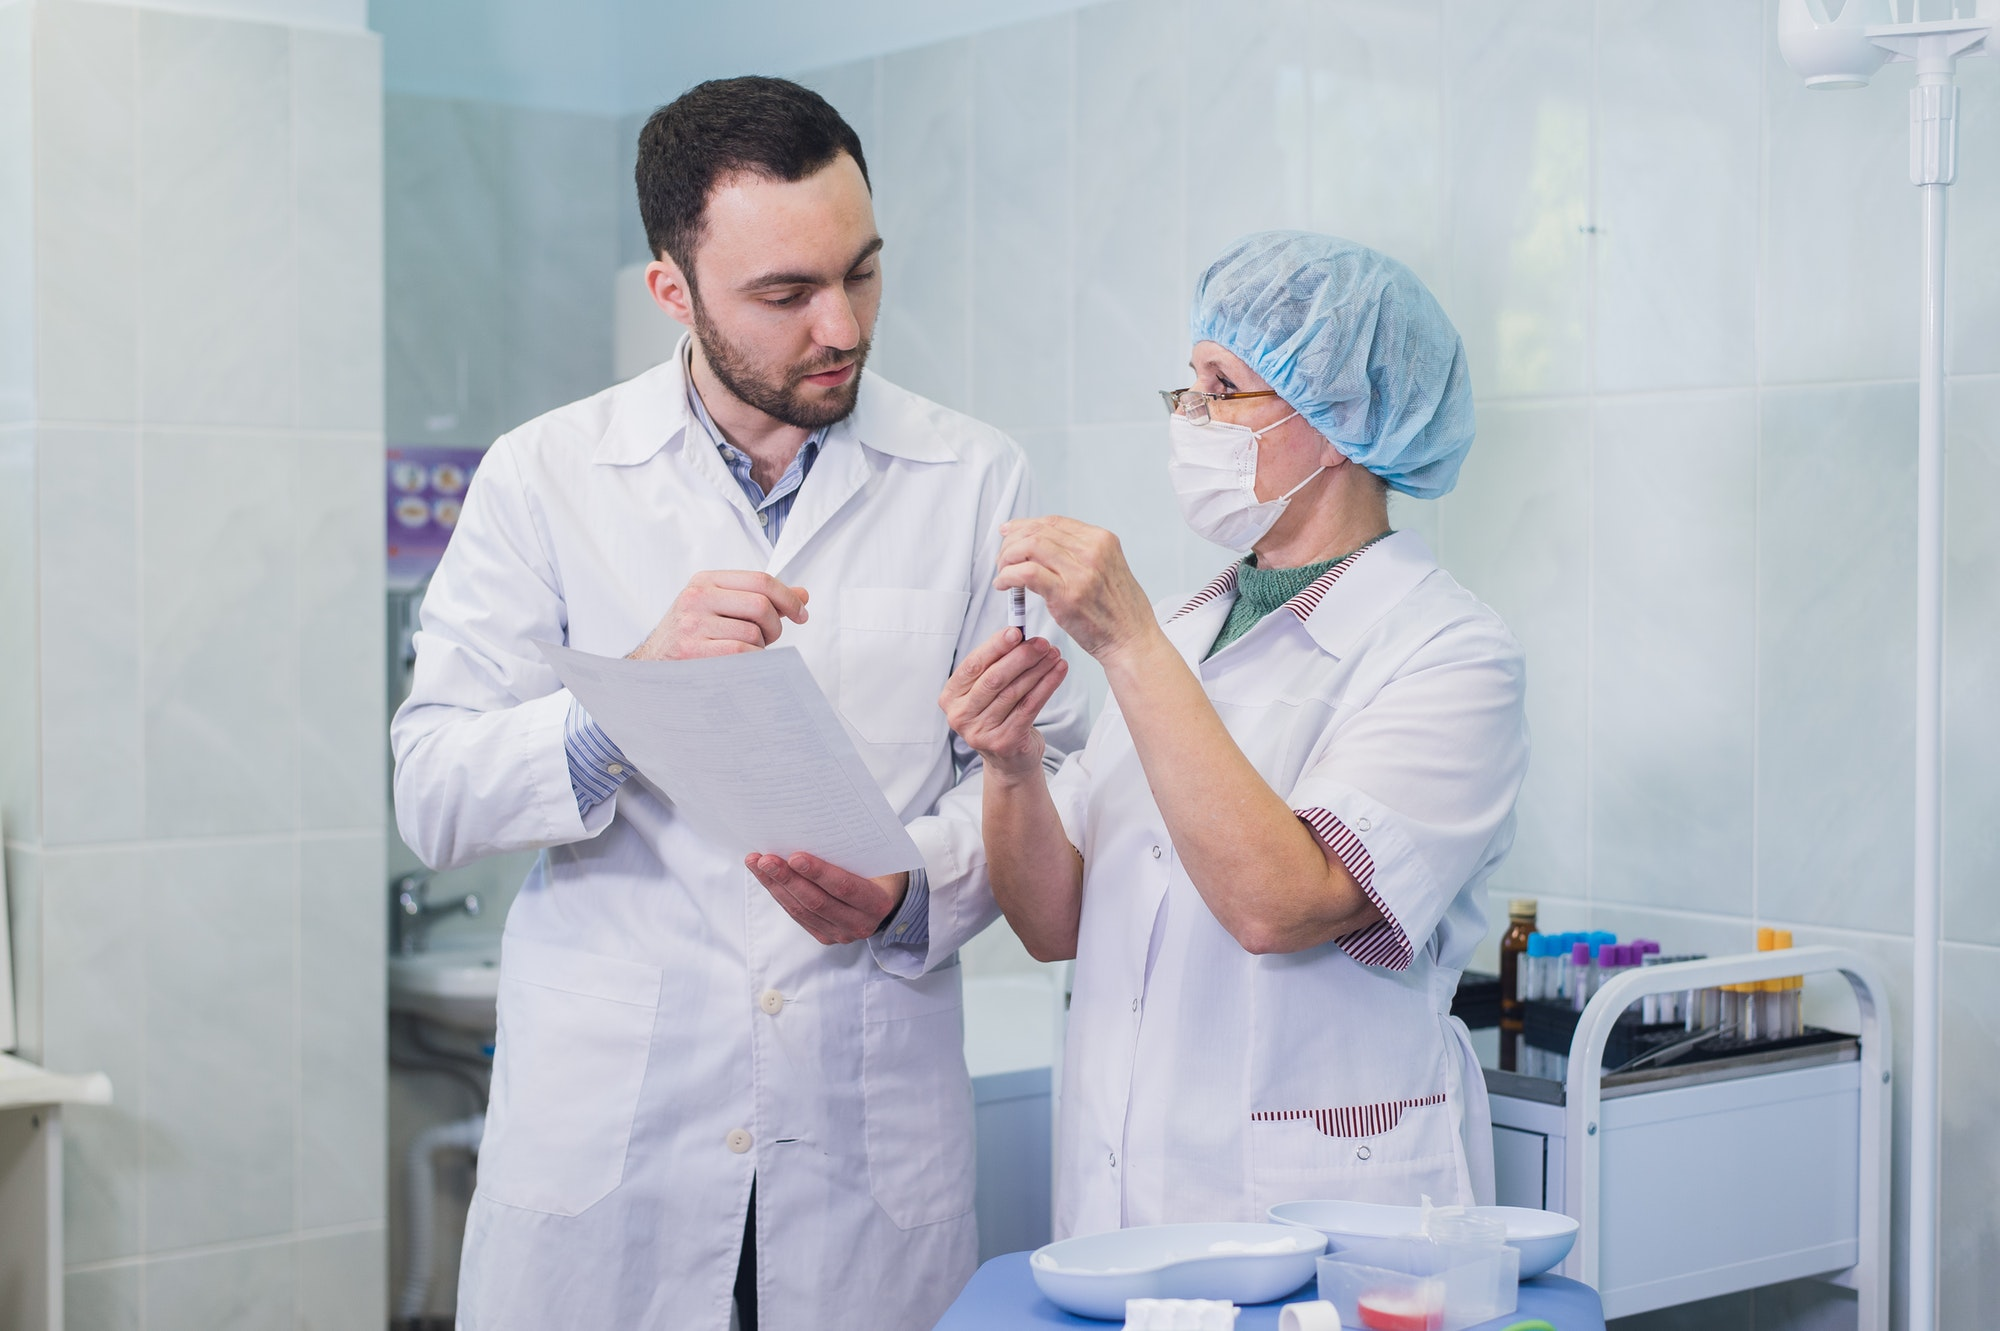 Young and senior chemists working together and looking at a test tube in a clinical laboratory